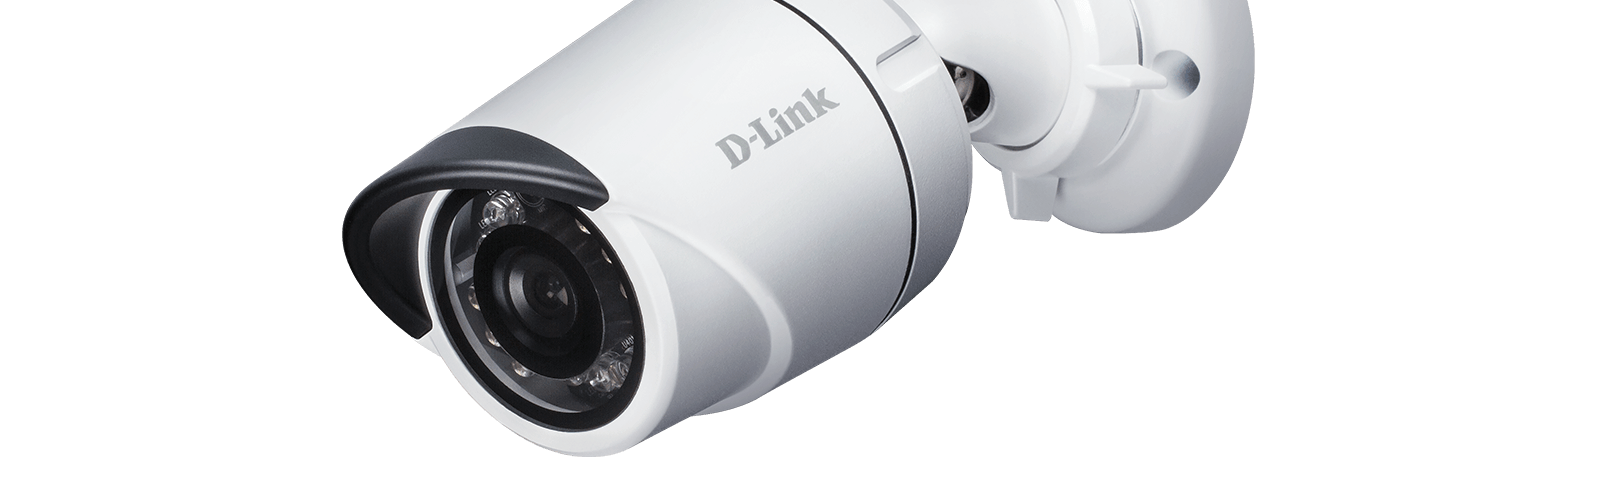 DCS-4705E Vigilance 5-Megapixel Outdoor Mini Bullet Camera